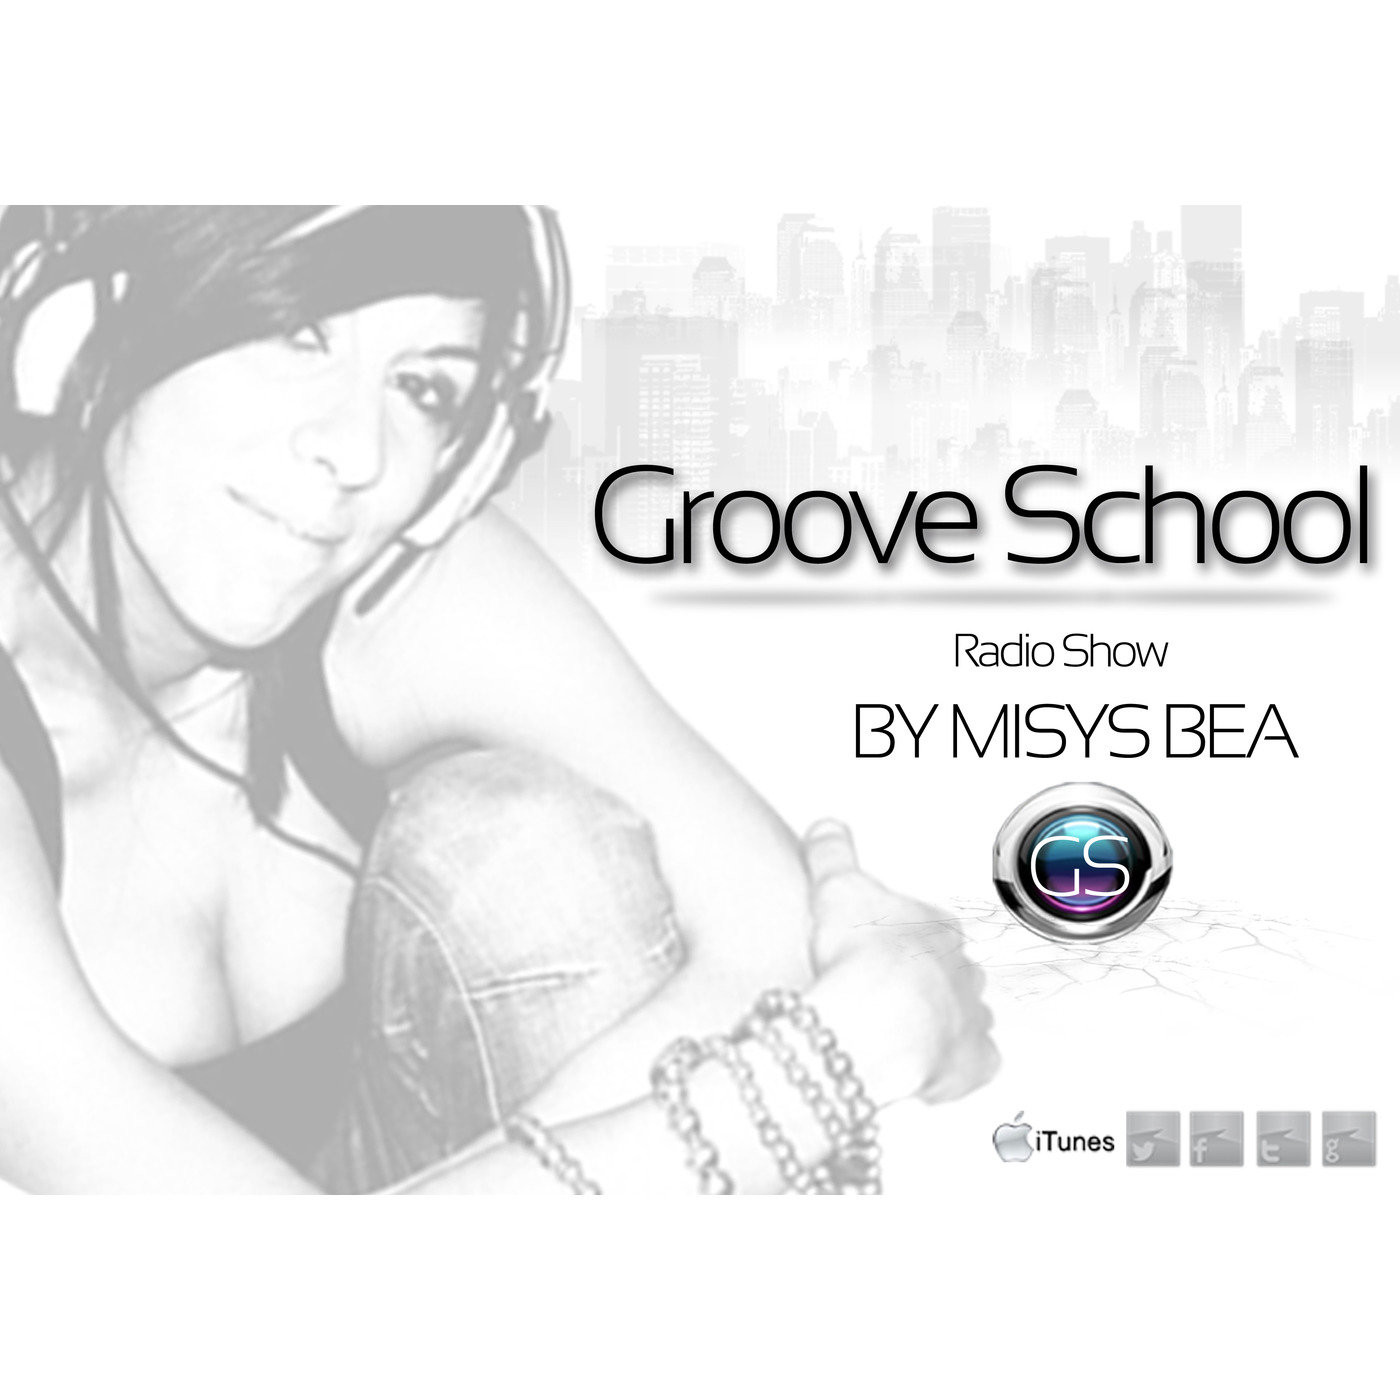 Podcast Groove School By Misys Bea